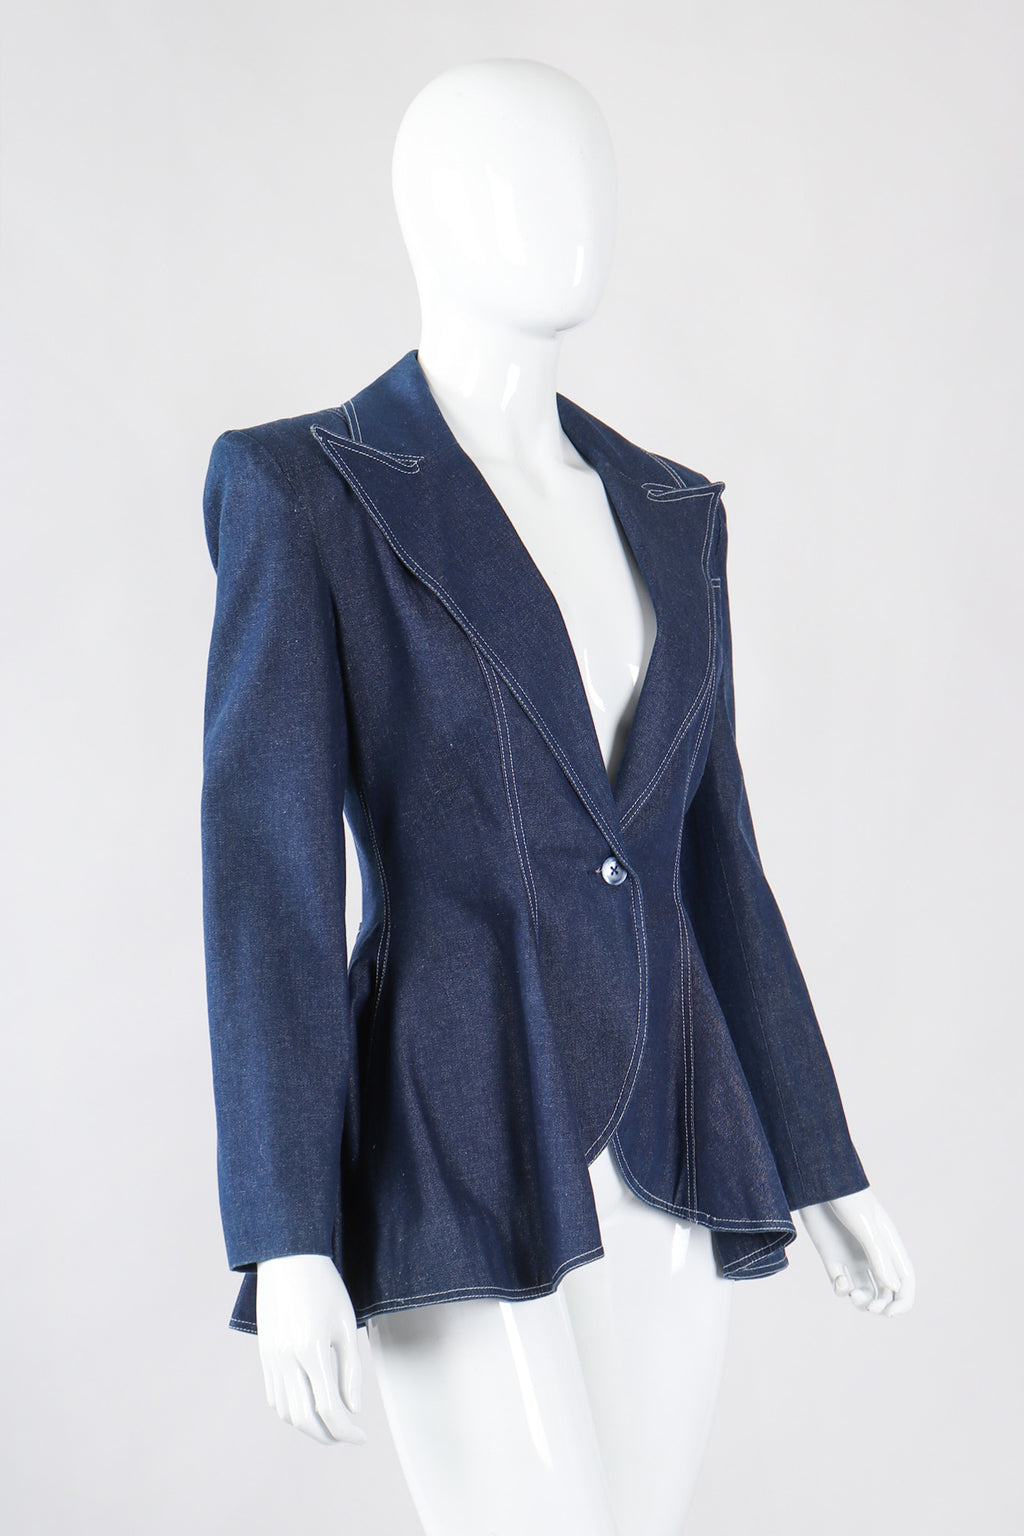 Recess Los Angeles Vintage Patrick Kelly Denim Wide Lapel Flare Peplum Jacket